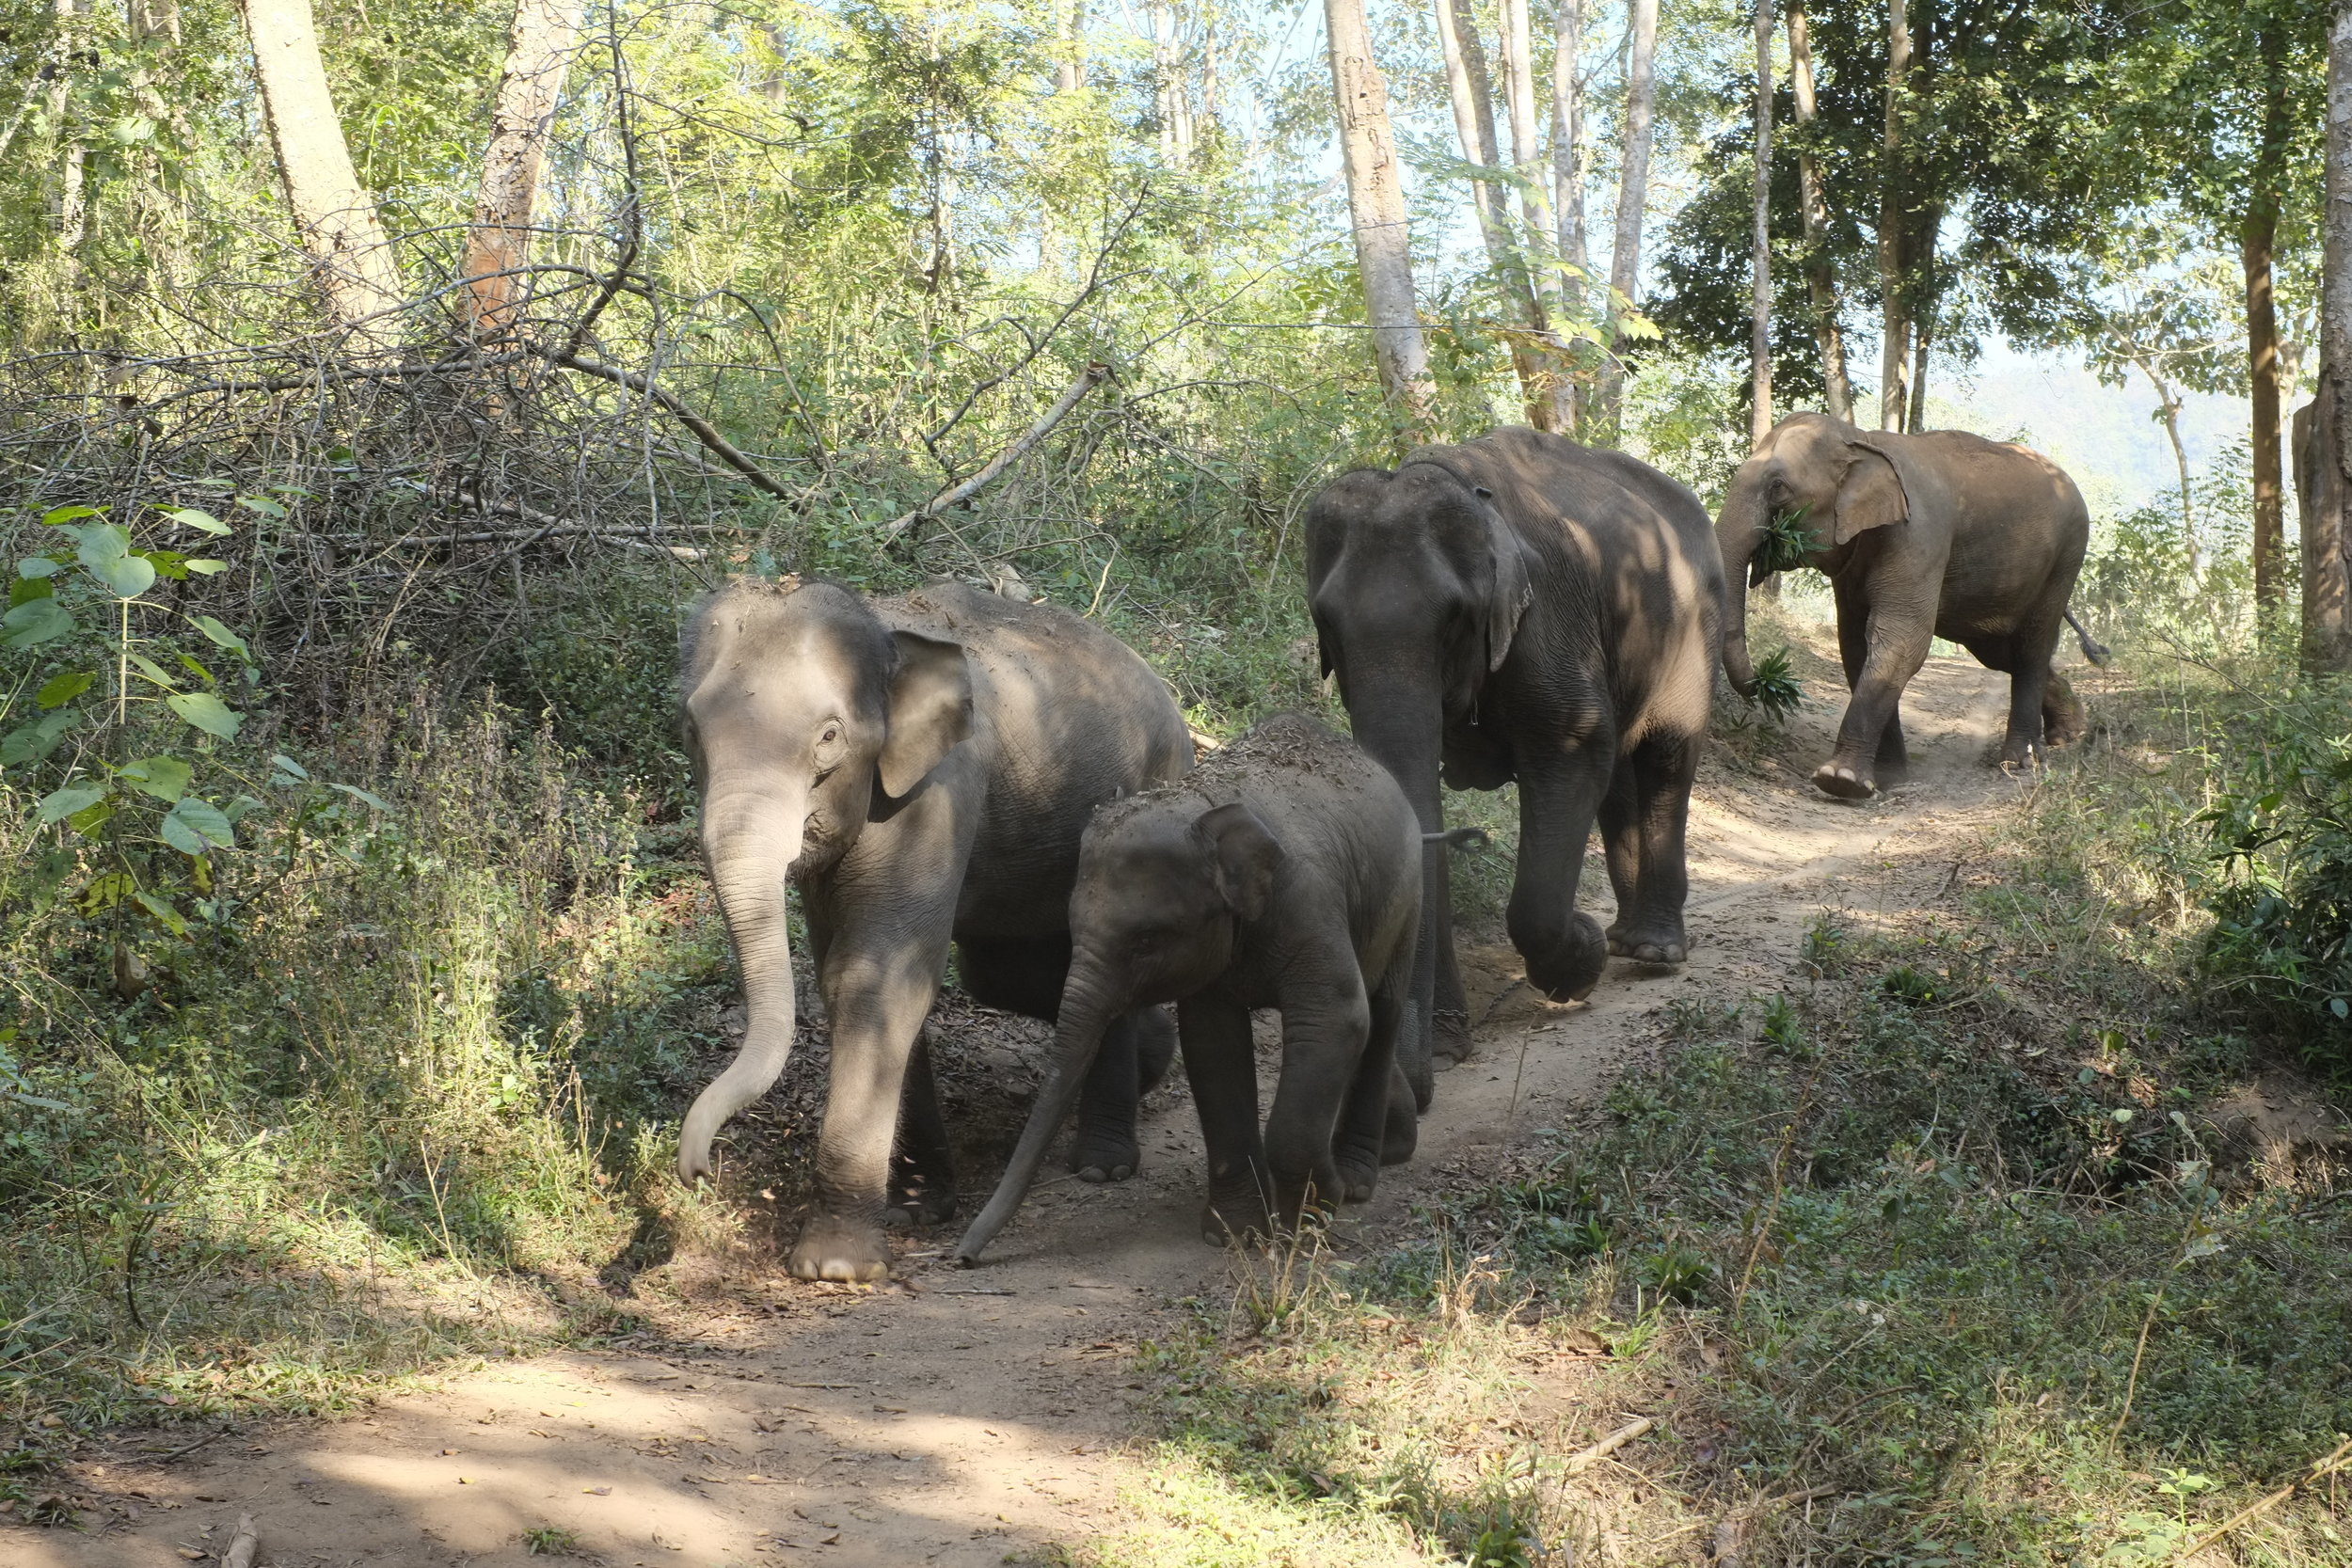 Elephants at Chai Lai Orchid in Chiang Mai